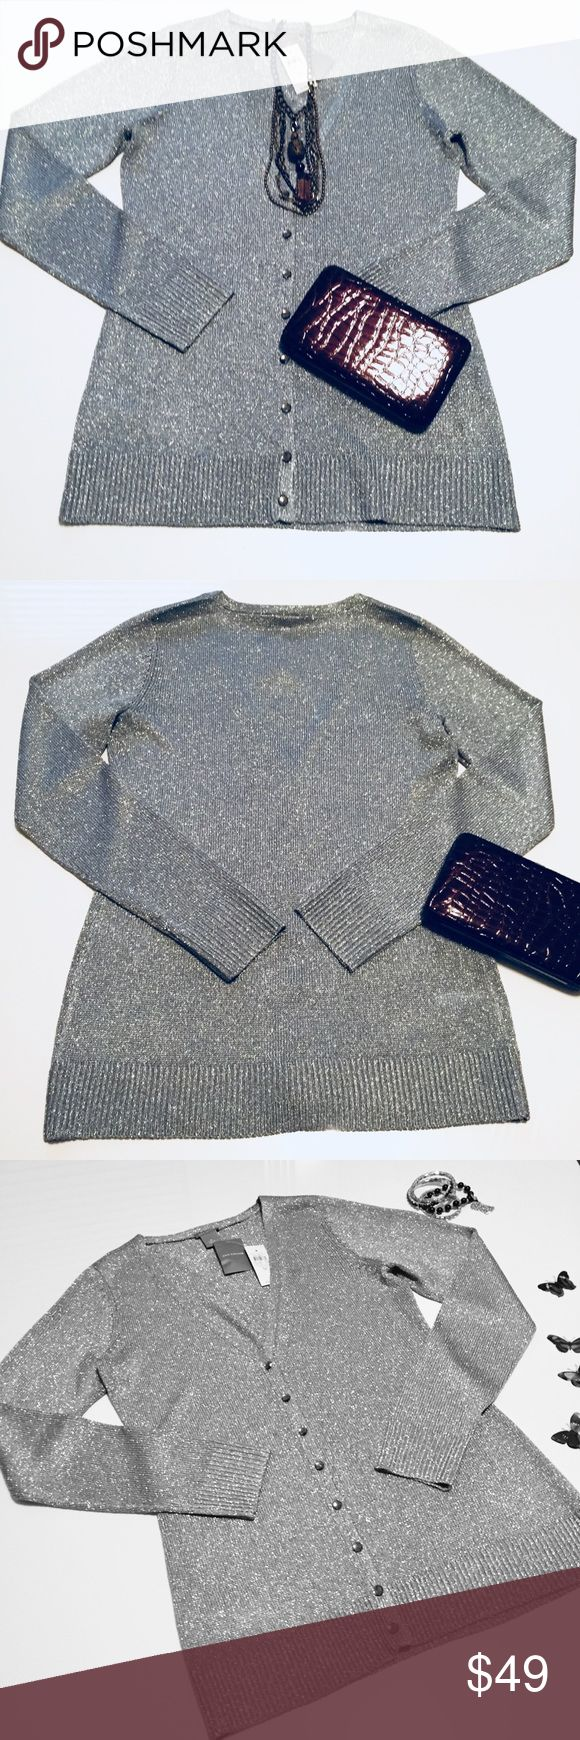 """🆕 Ann Taylor Silver Cardigan Sweater Size Medium 🆕 NWT Ann Taylor Silver Metallic Cardigan Sweater Size Medium.  Material: 79% Acetate, 11% Rayon, 20% Metallic. Hand Wash. Approximate measurements laying flat: Bust: 17.5"""", Length: 27.5"""", Sleeves: 26"""". 🚫 NO TRADES OR LOW BALL OFFERS🚫 A3 Ann Taylor Sweaters Cardigans"""